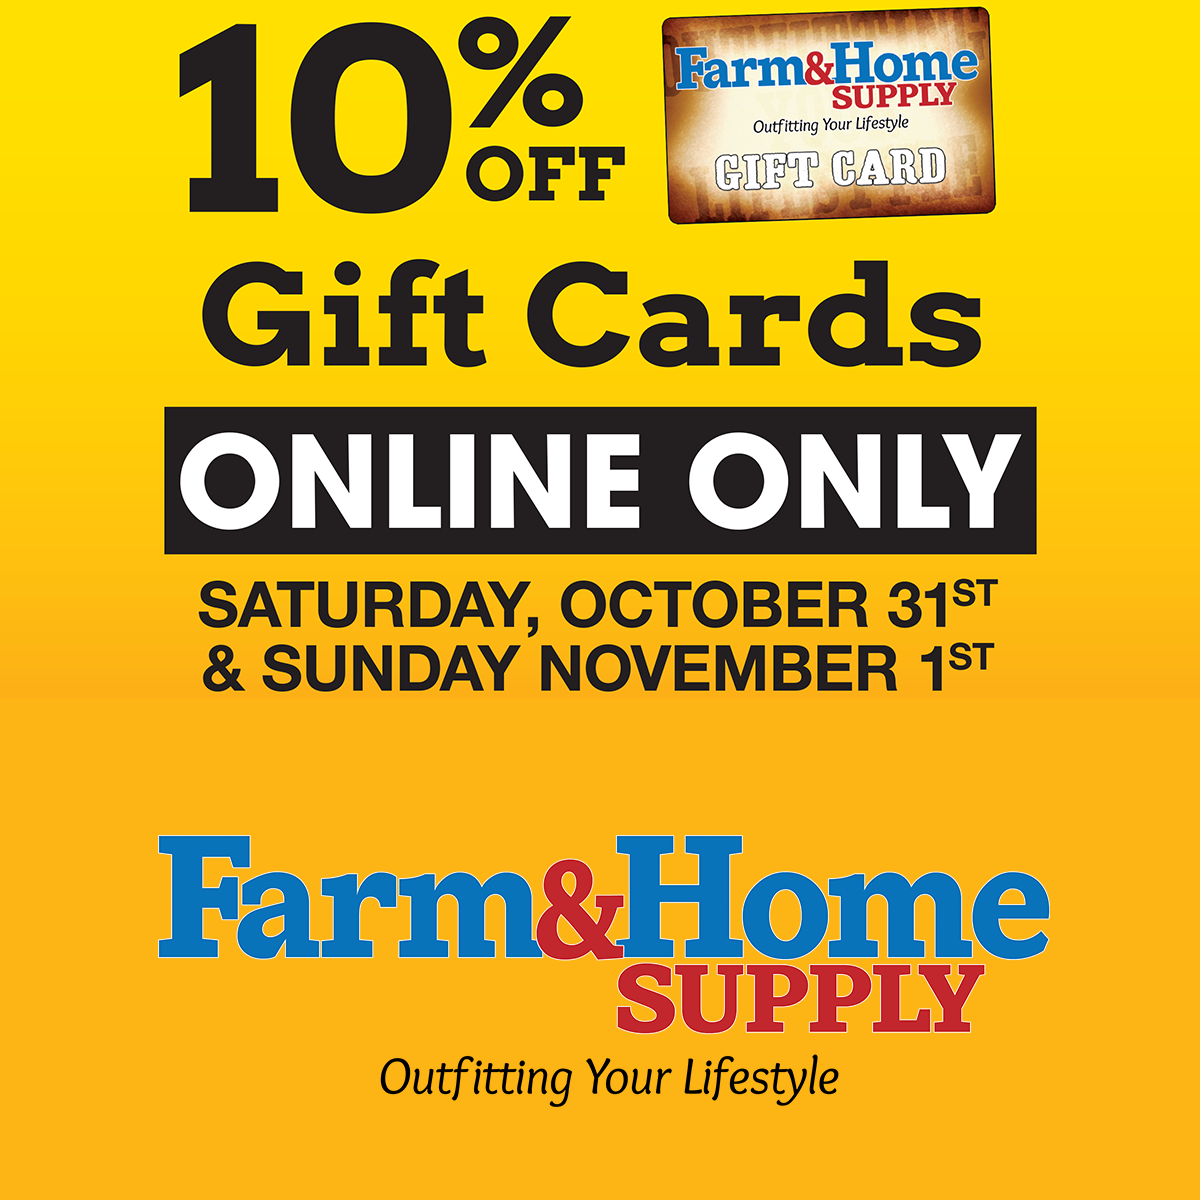 10% Off Gift Cards Online Only